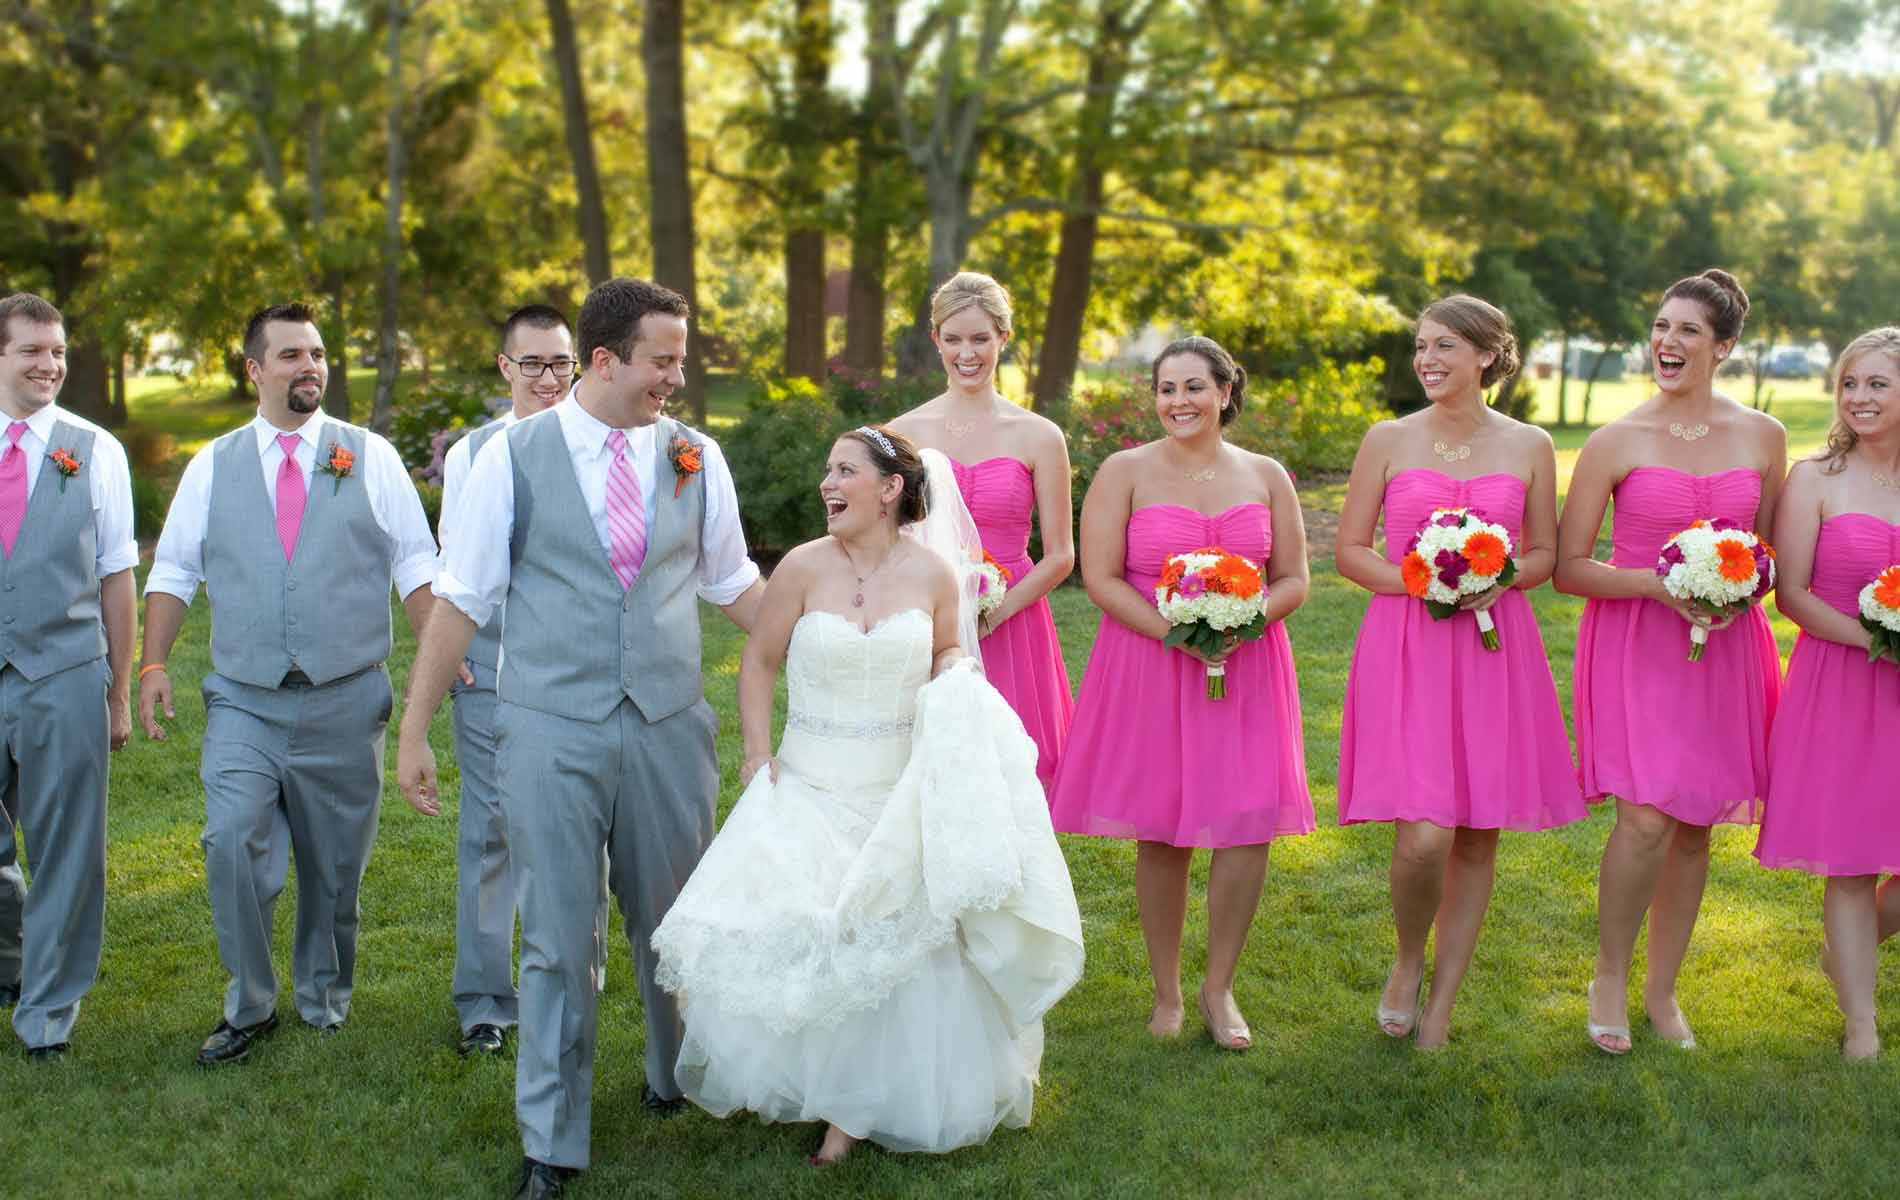 The Oaks Waterfront Inn & Events Maryland Wedding Venues bride and groom walk with bridesmaids and groomsmen on waterfront